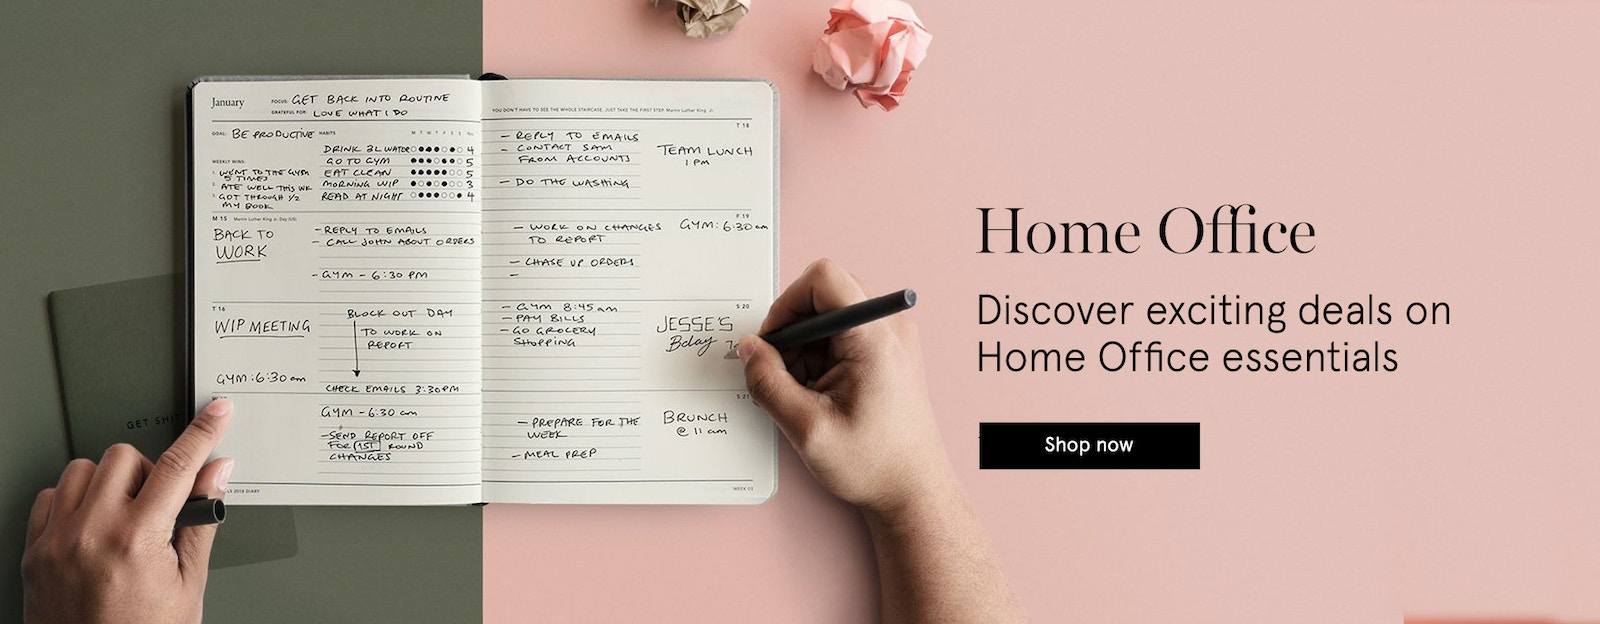 Exciting Home Office deals on The Myer Market